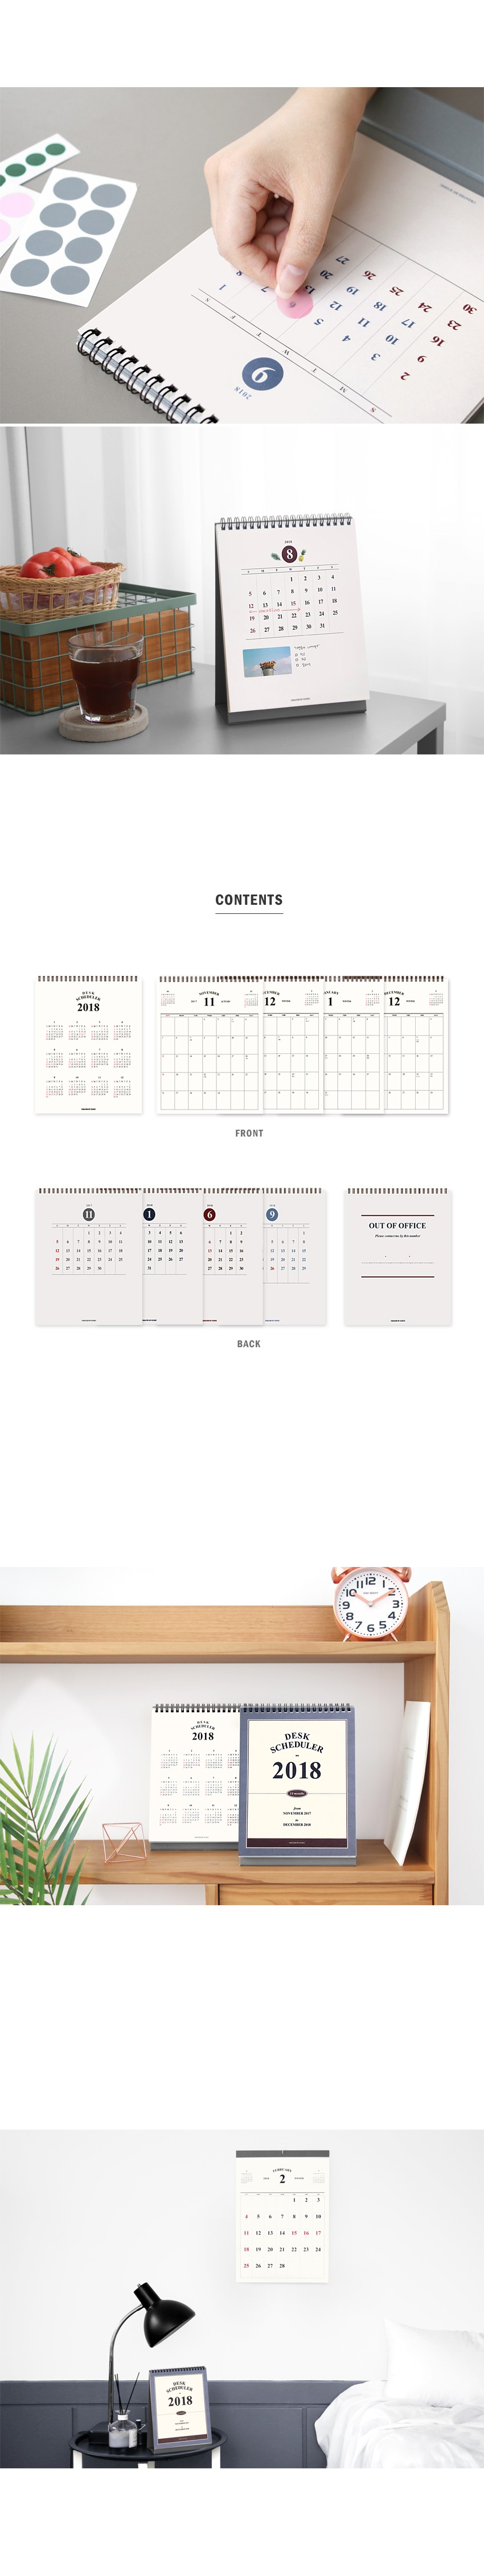 2018-desk-scheduler-3.jpg